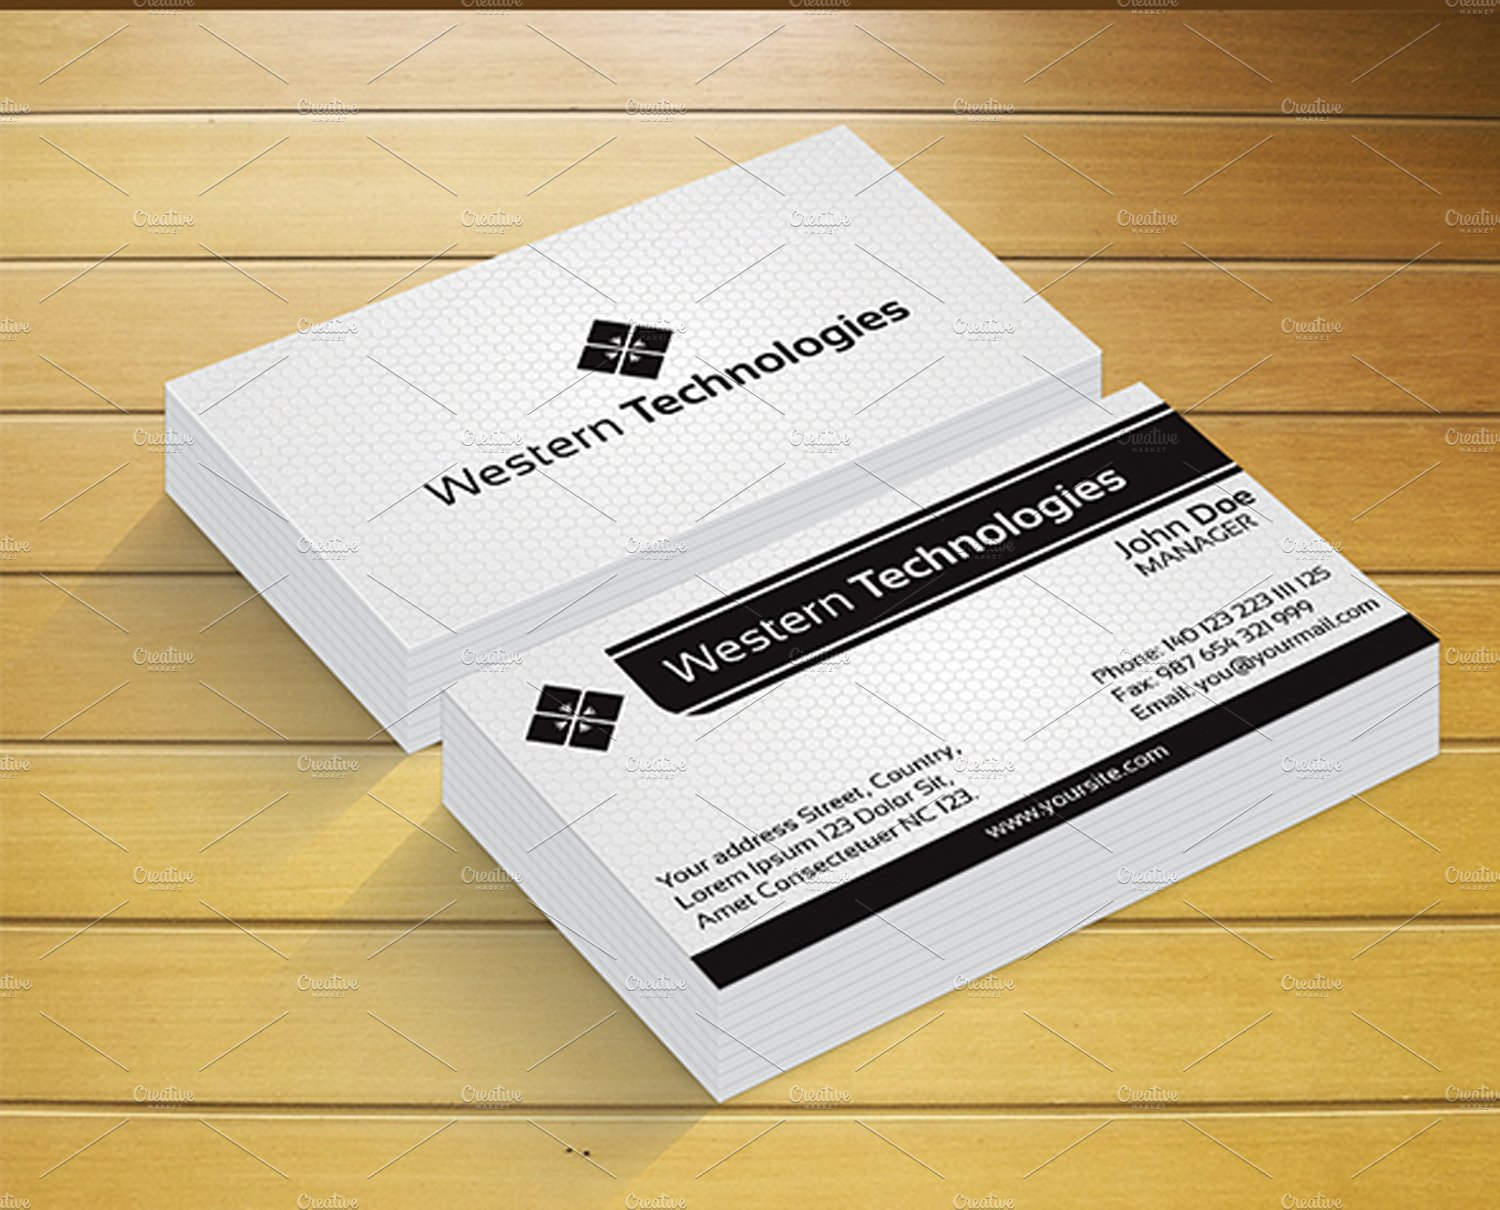 Western Technology Business Card ~ Business Card Templates ...